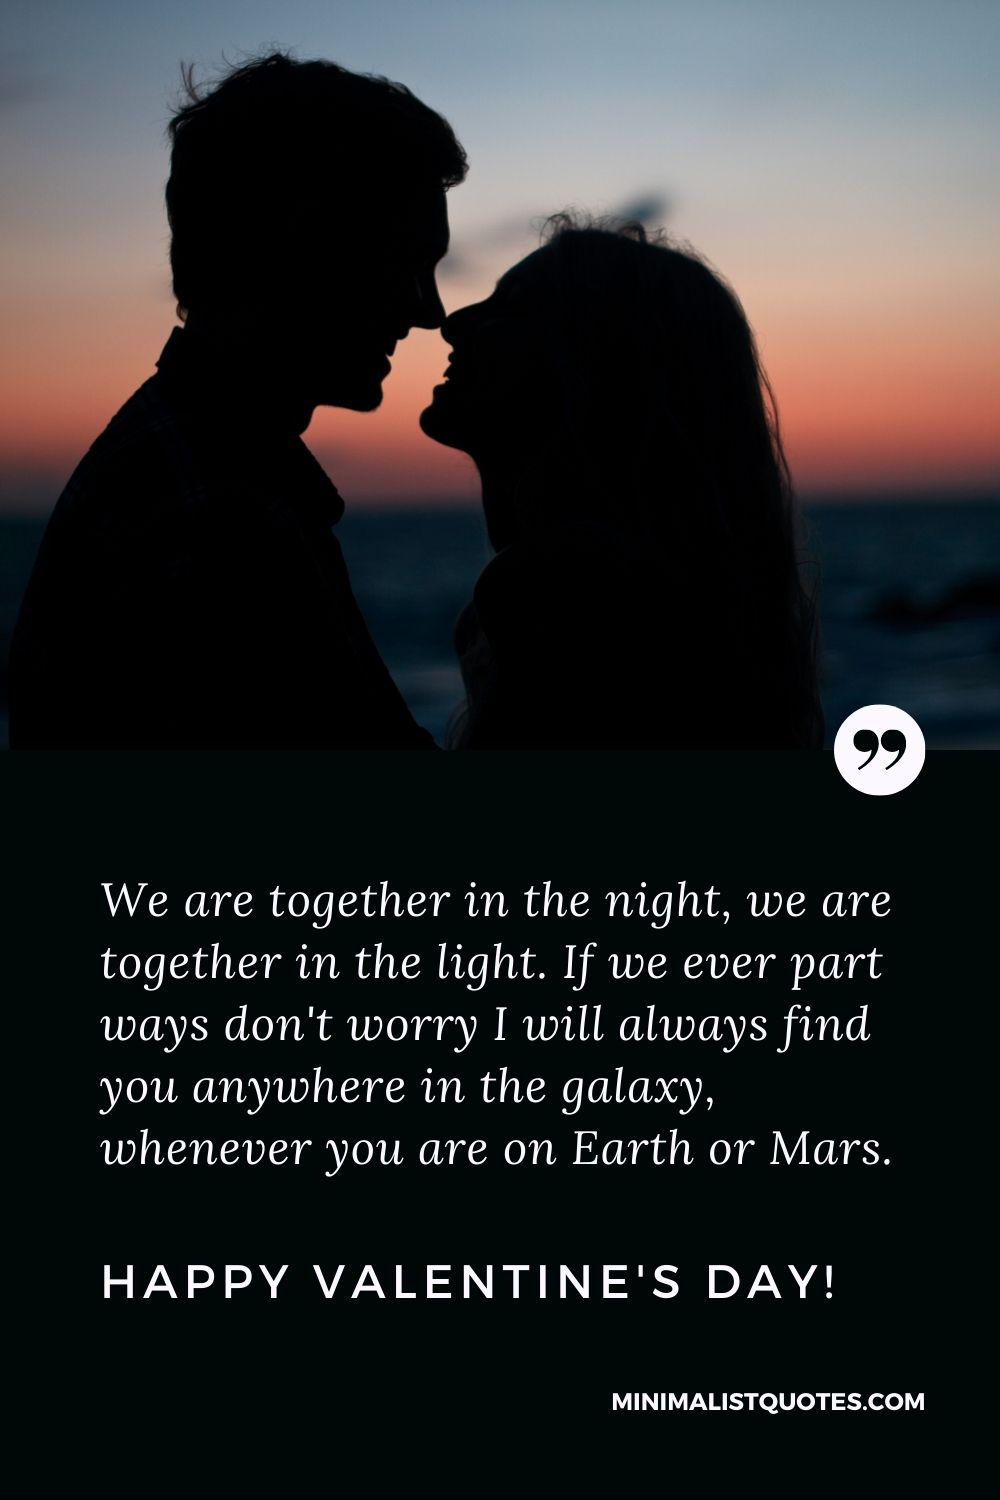 Valentine's Day Quote, Wish & Message With Image: We are together in the night, we are together in the light. If we ever part ways don't worry I will always find you anywhere in the galaxy, whenever you are on Earth or Mars. Happy Valentines Day!